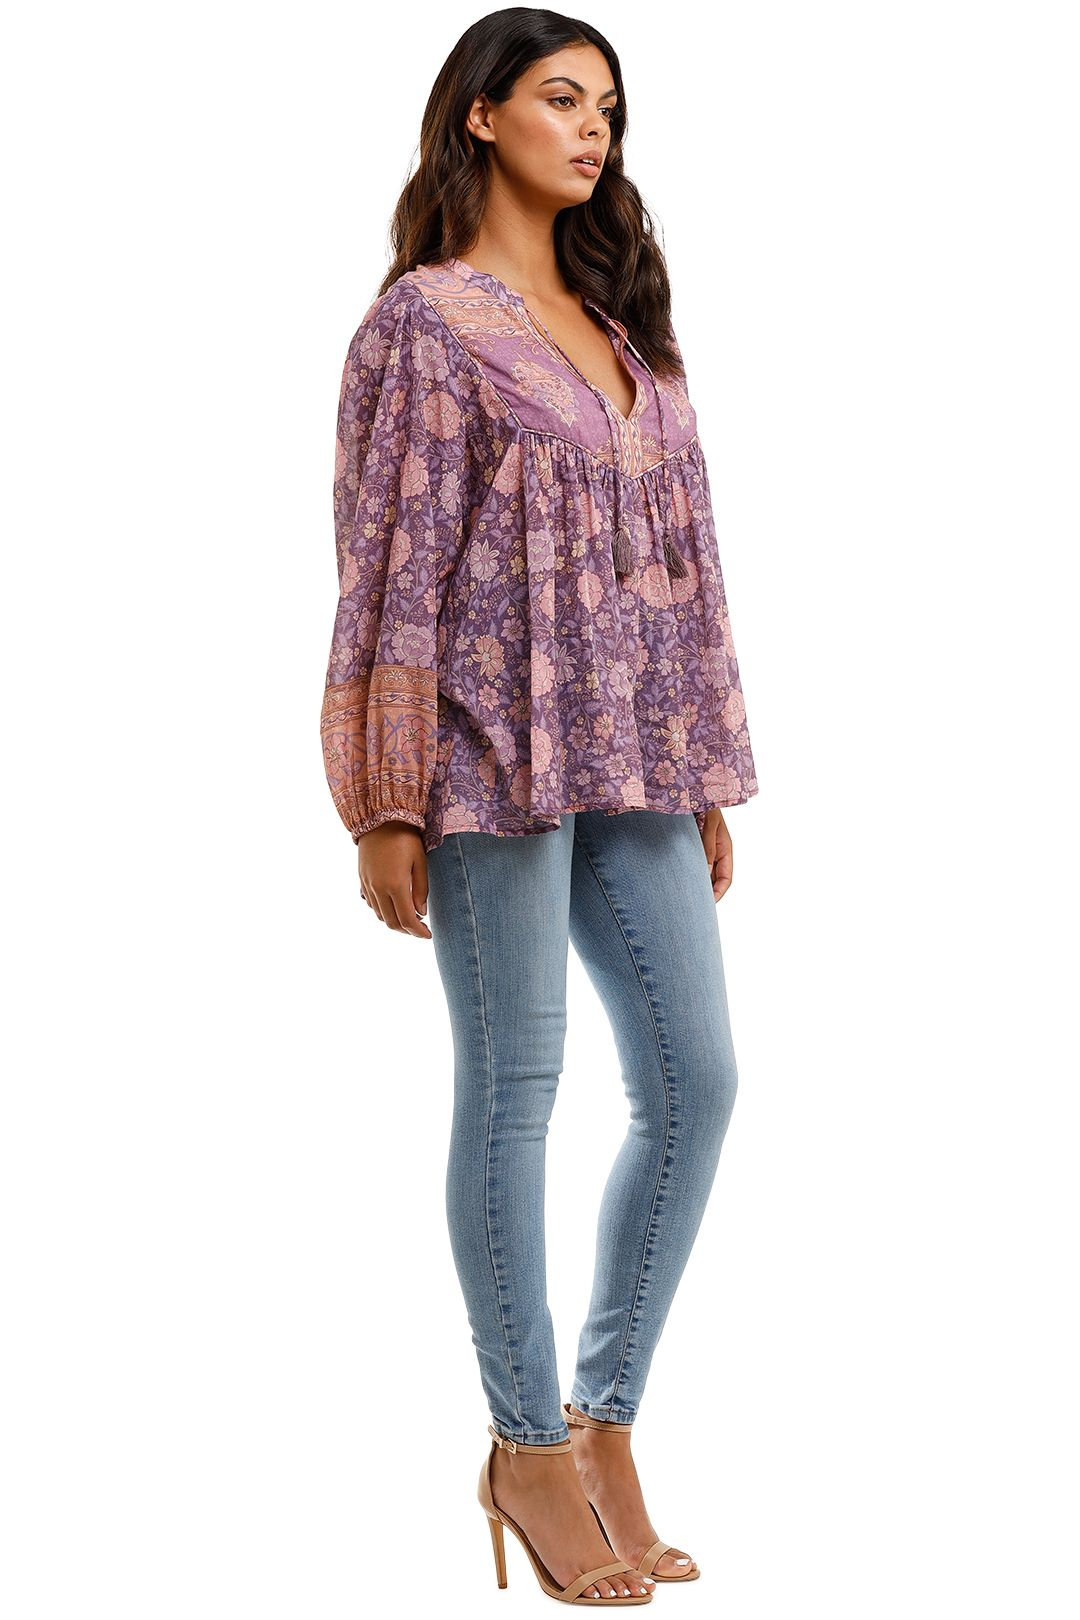 Spell Love Story Long Sleeve Blouse Royal Lilac Smock